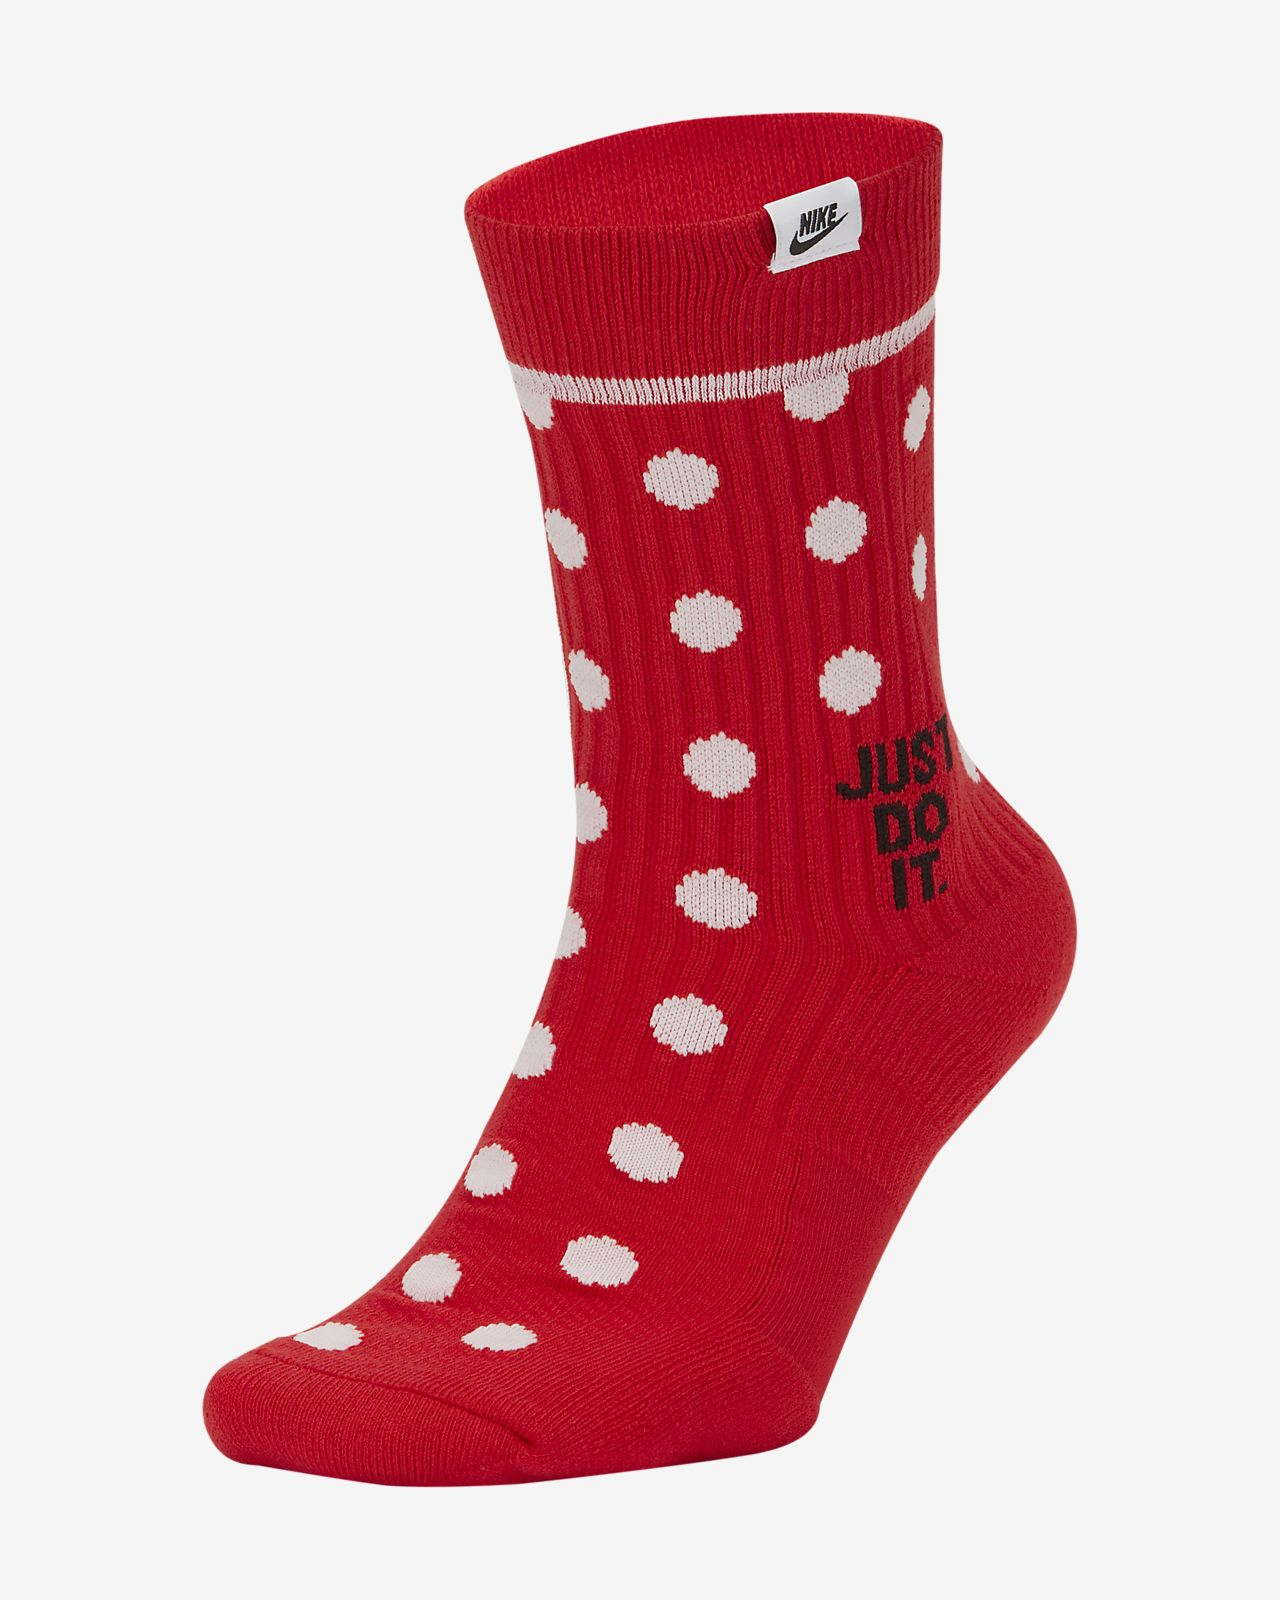 NIKE SNEAKR SOX Unisex Crew (2 Pairs)